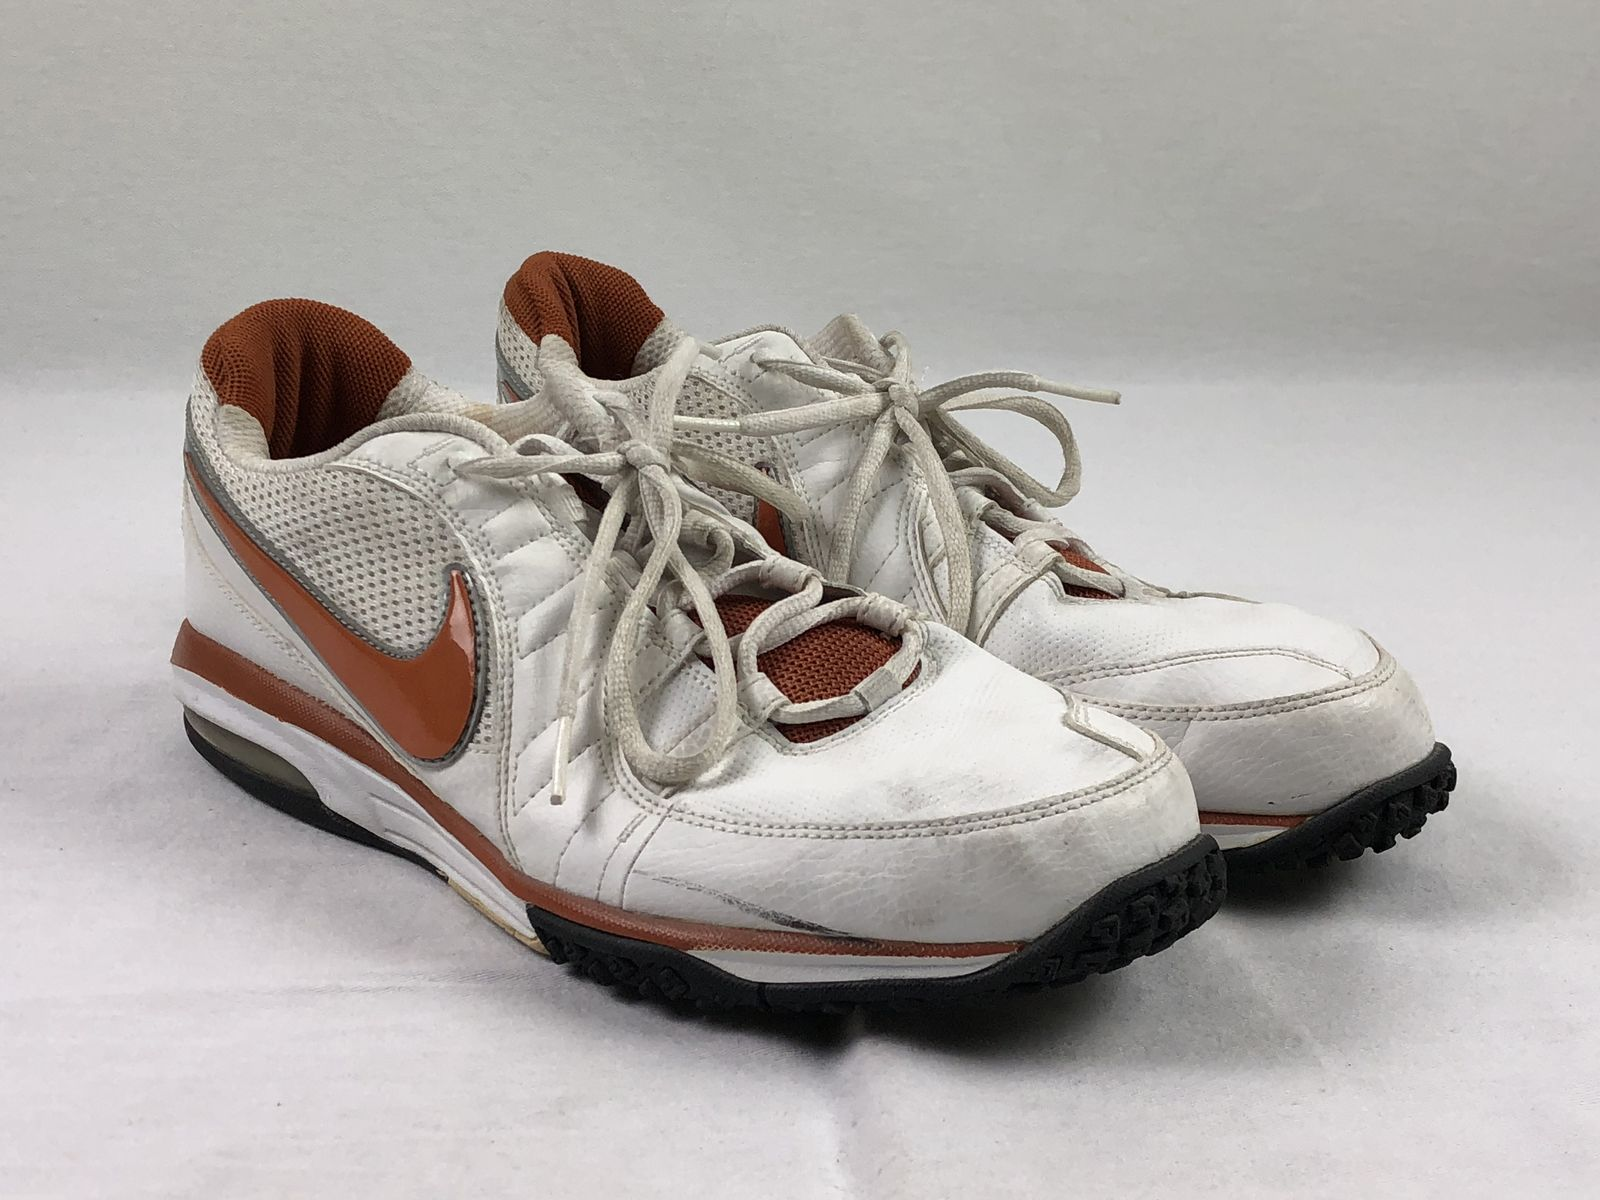 14f4077497eb4 Details about Nike Sparq - White Orange Running